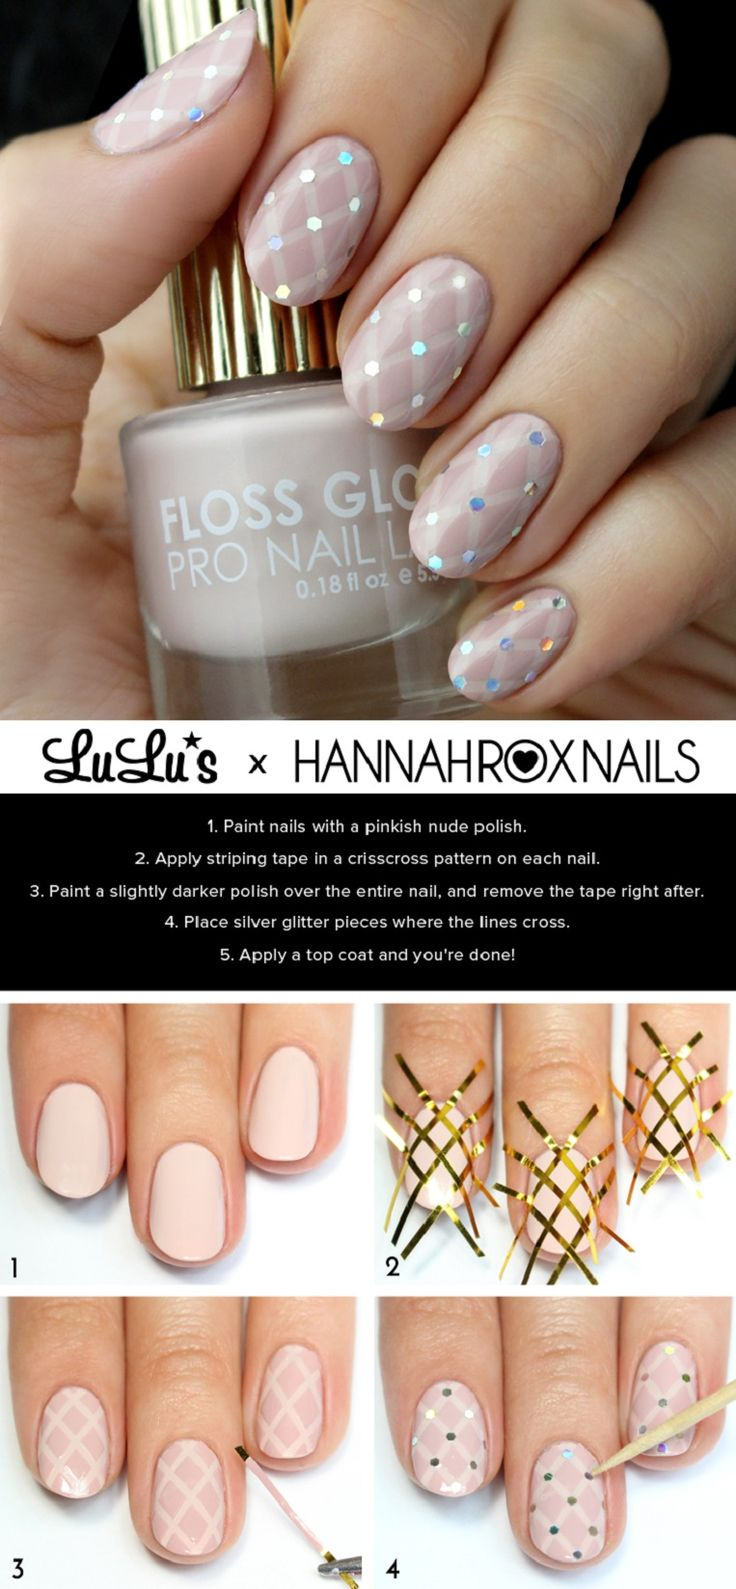 117 best ongles images on Pinterest | Nail art, Nail design and Nail ...